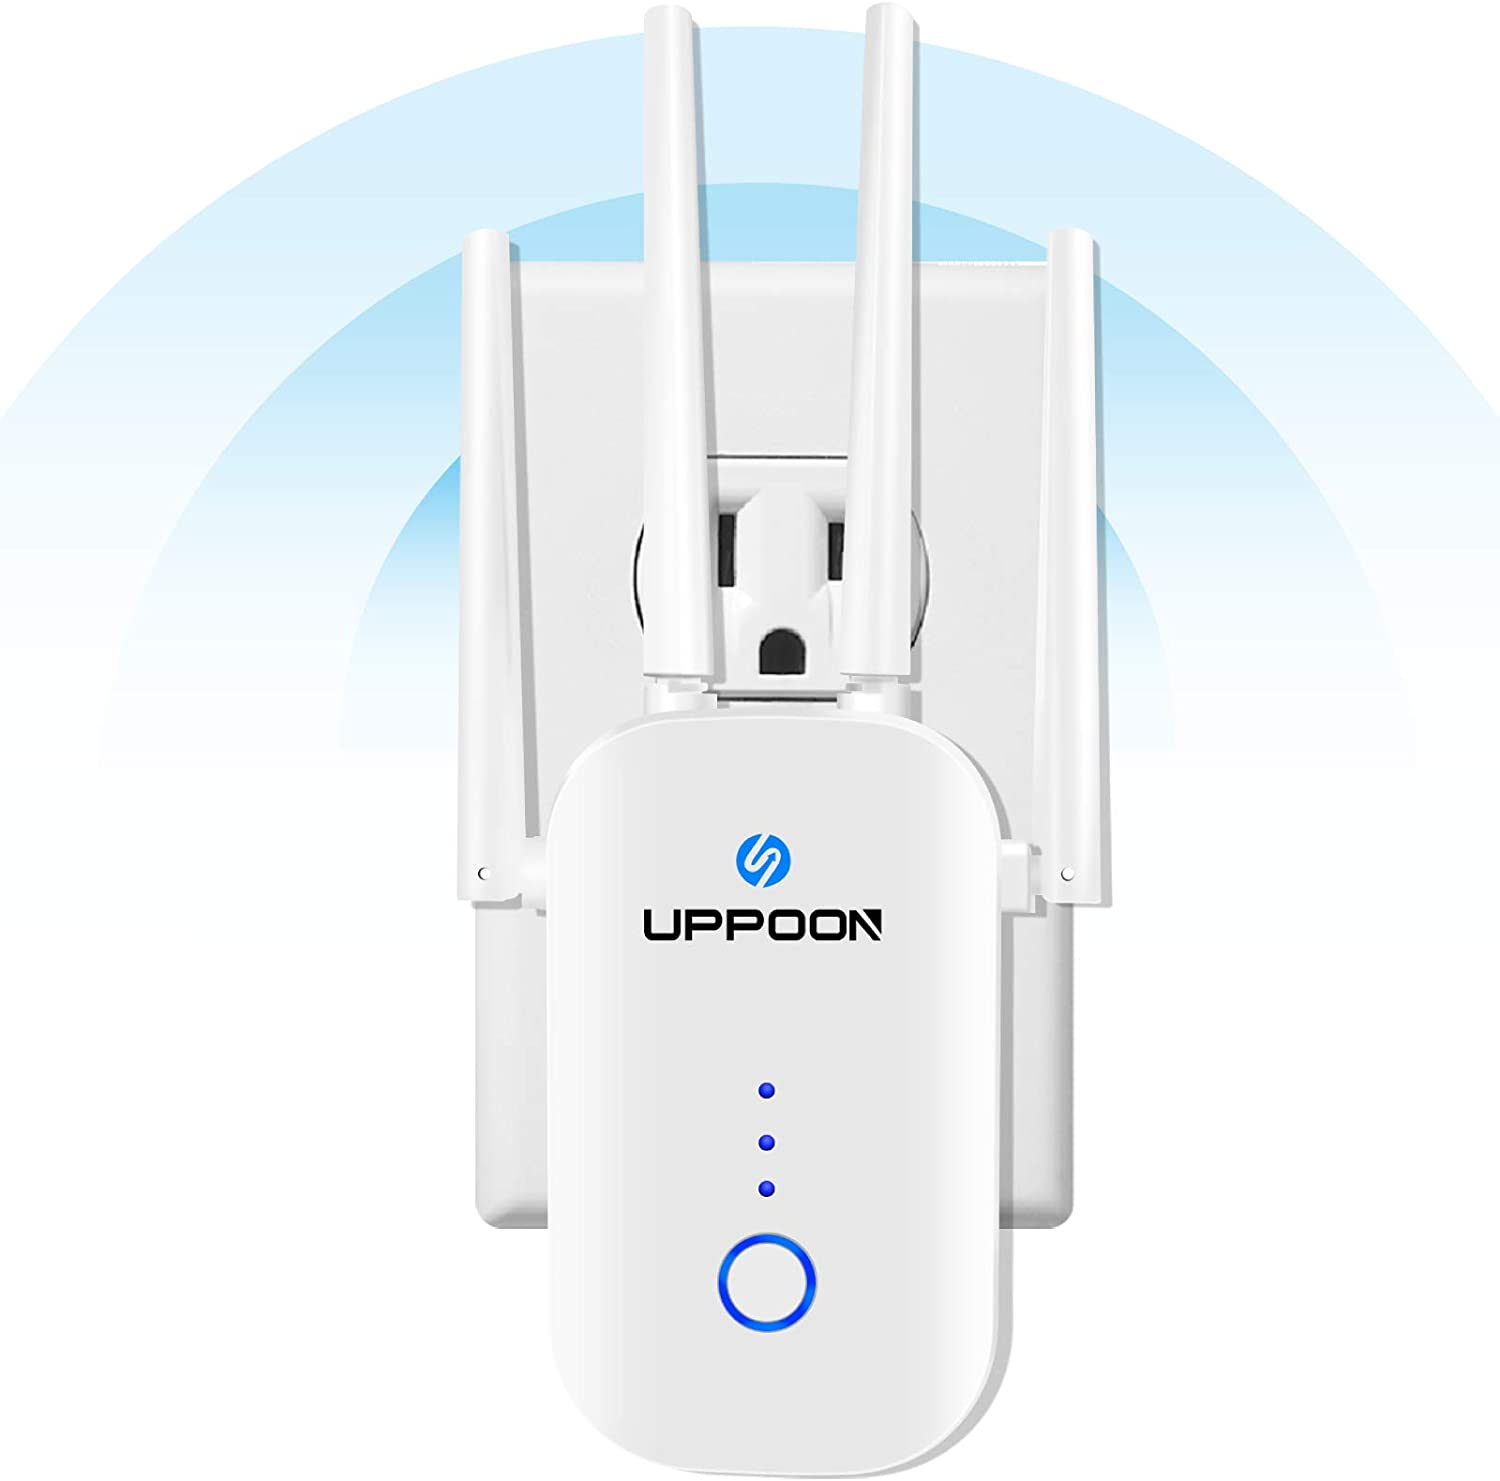 UPPOON 1200Mbps WiFi Extender Signal 4500sq.ft to OFFer 2. Booster Deluxe up